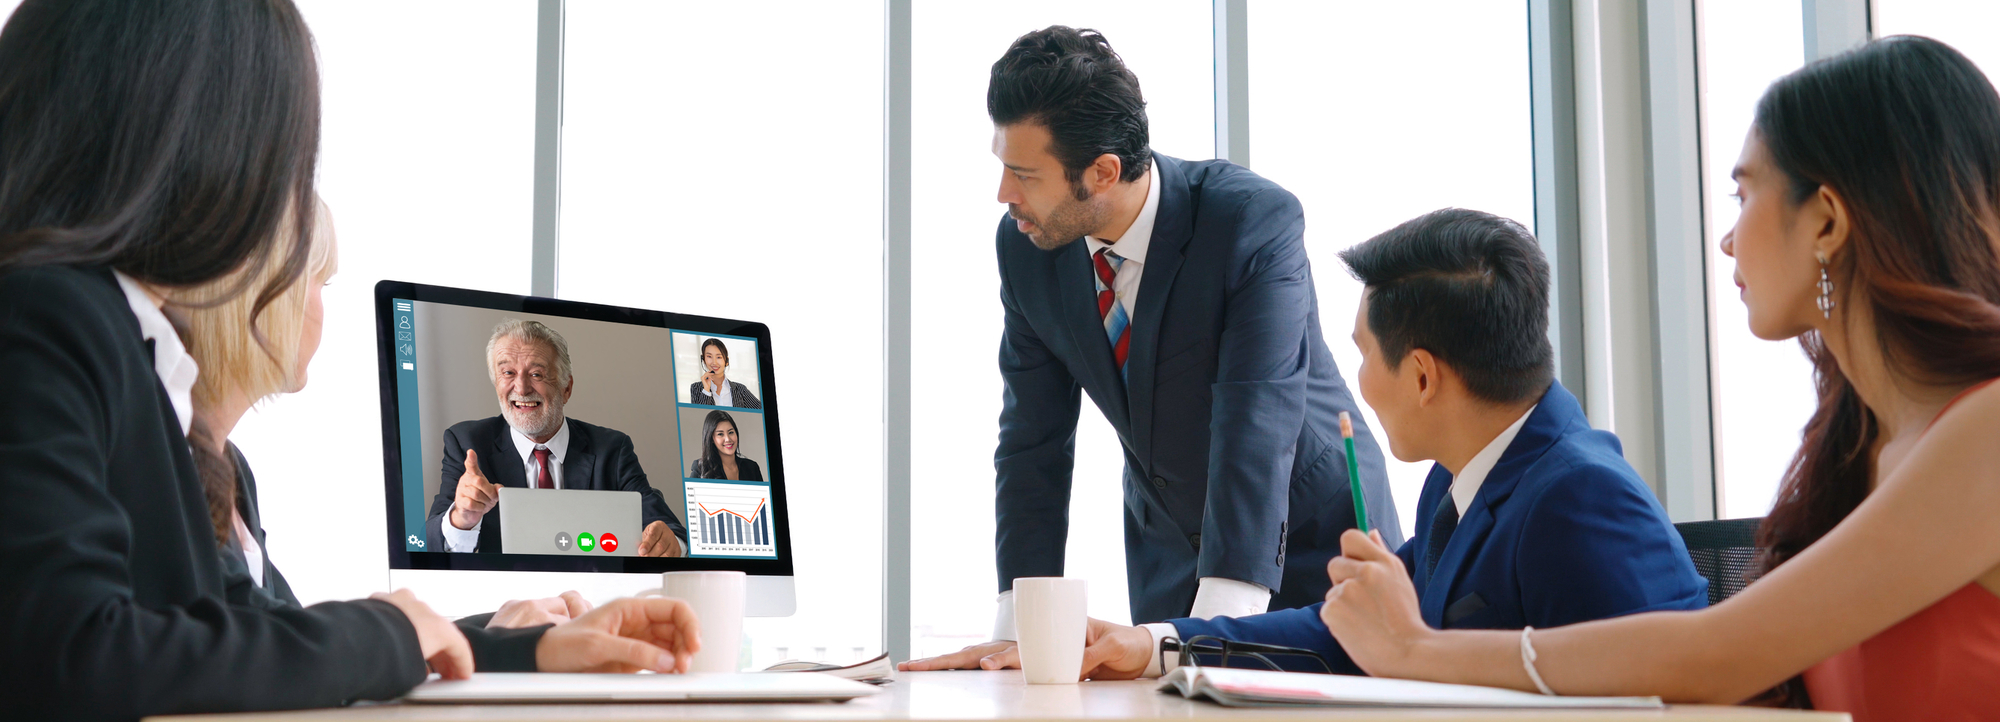 New Ways to Network Successfully in These Virtual Times